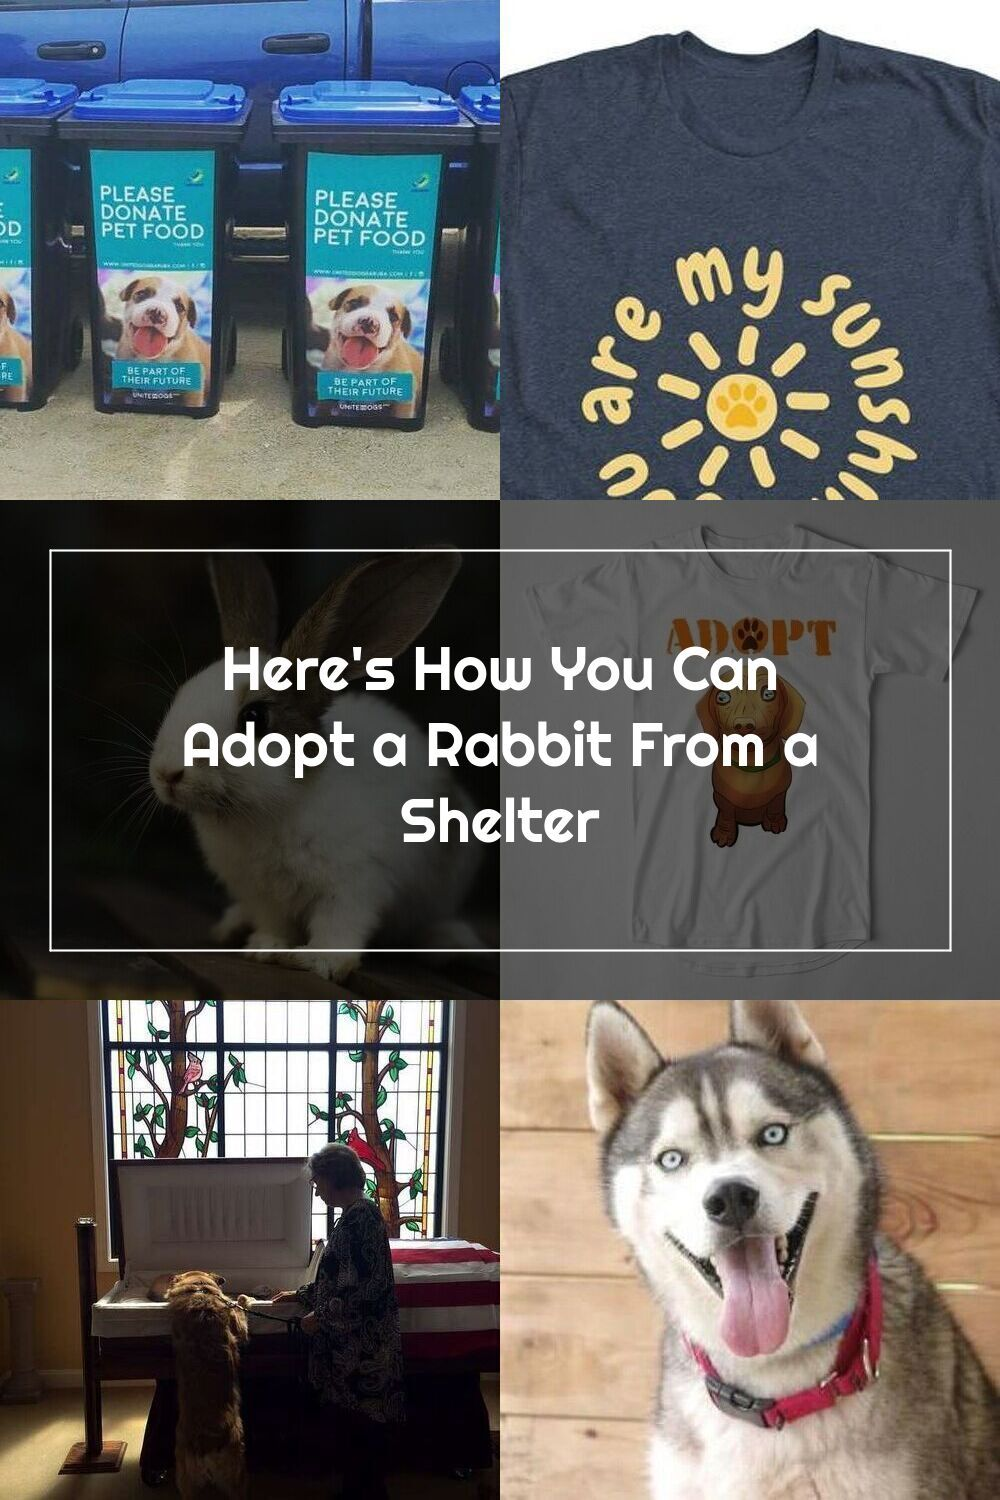 Here's How You Can Adopt a Rabbit From a Shelter in 2020